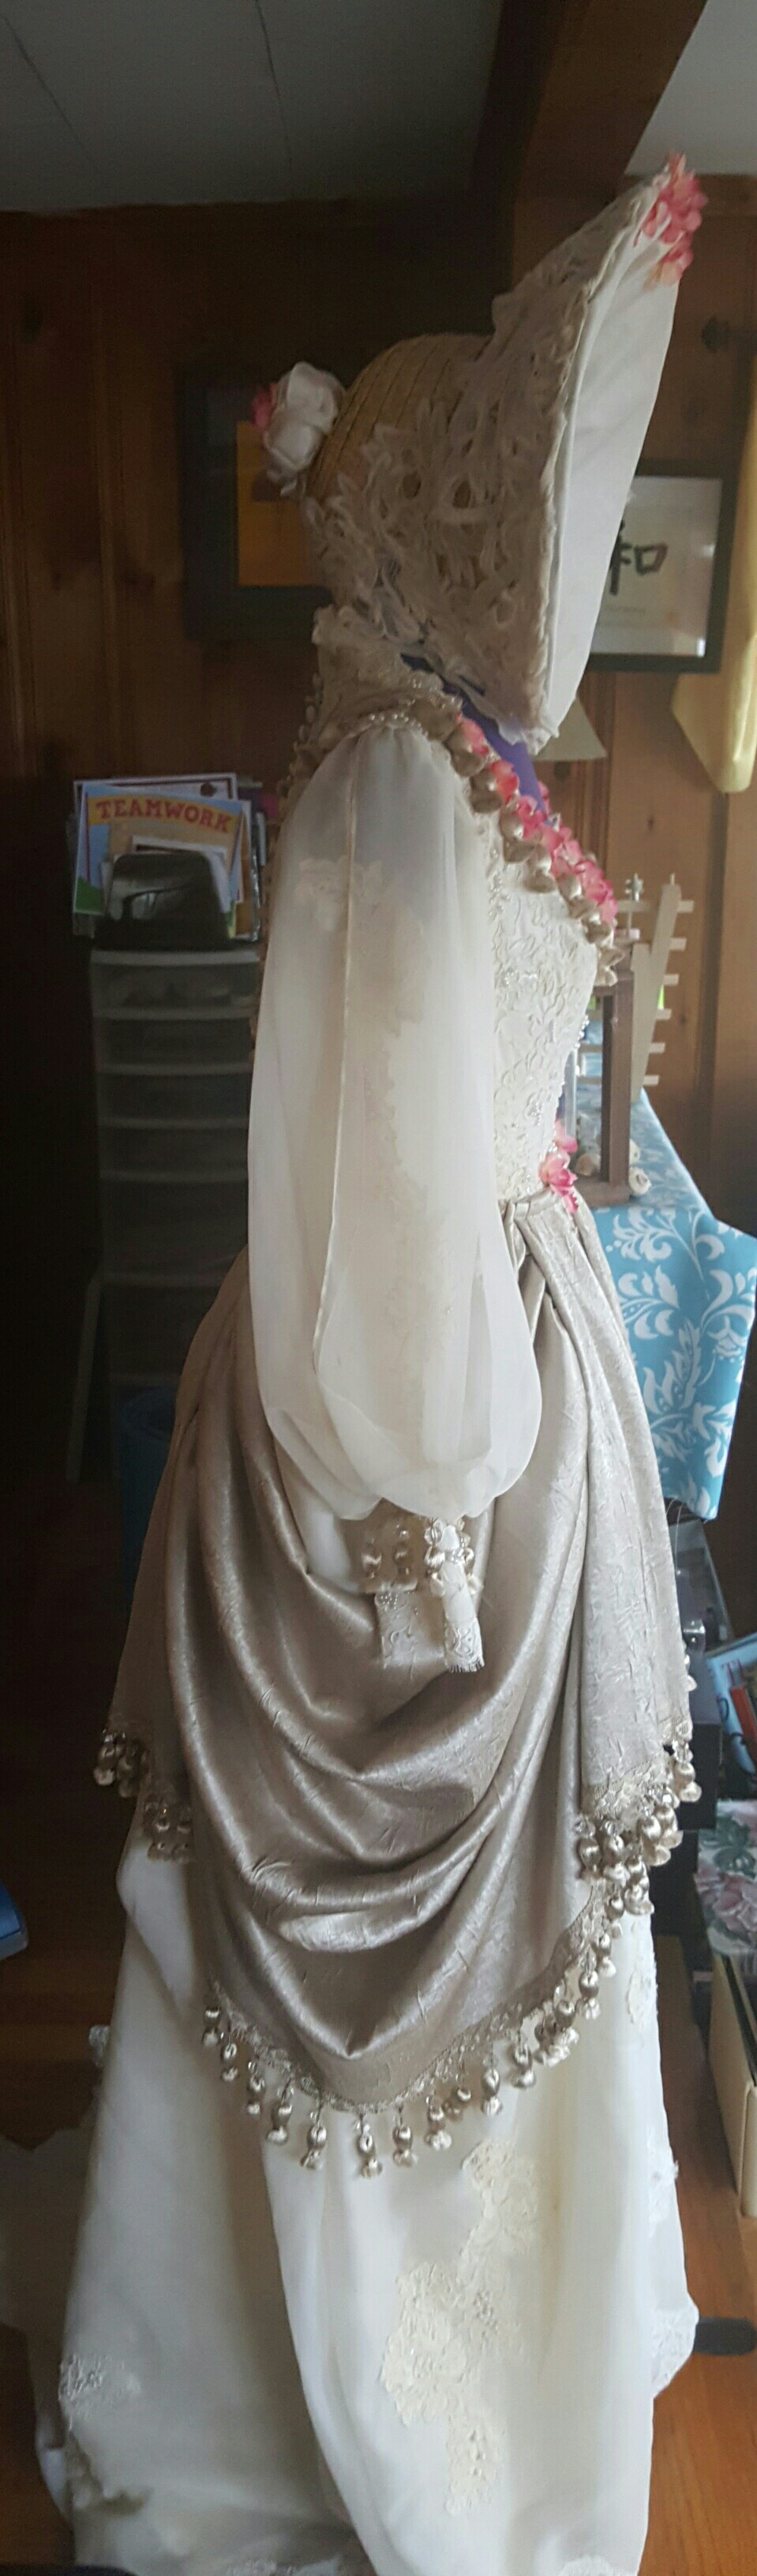 Southern belle wedding dresses  Side view Refashioned an old wedding gown into a post Civil War